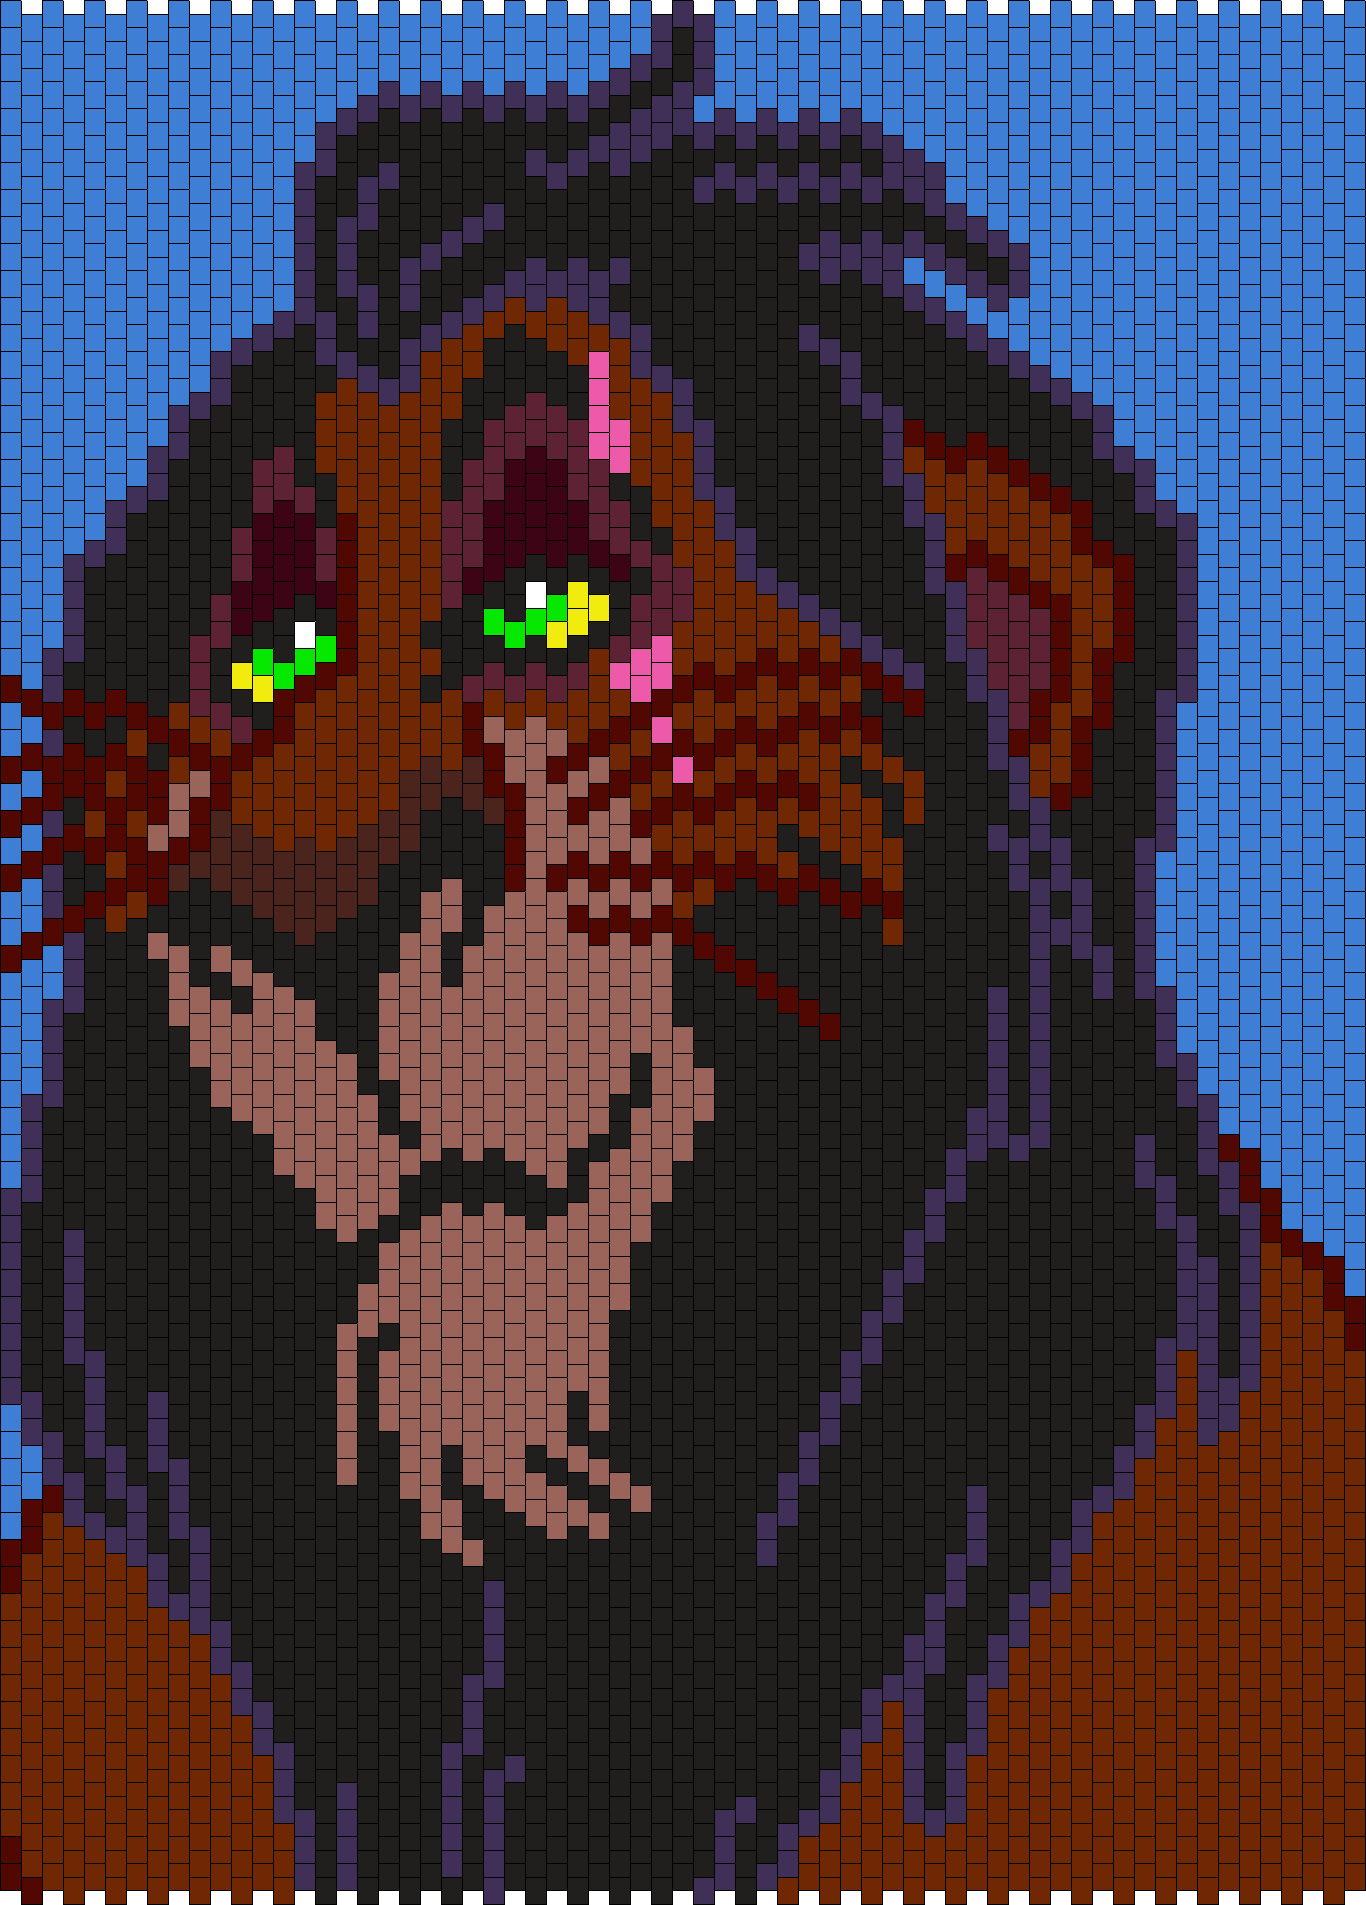 Scar From Lion King (Multi)